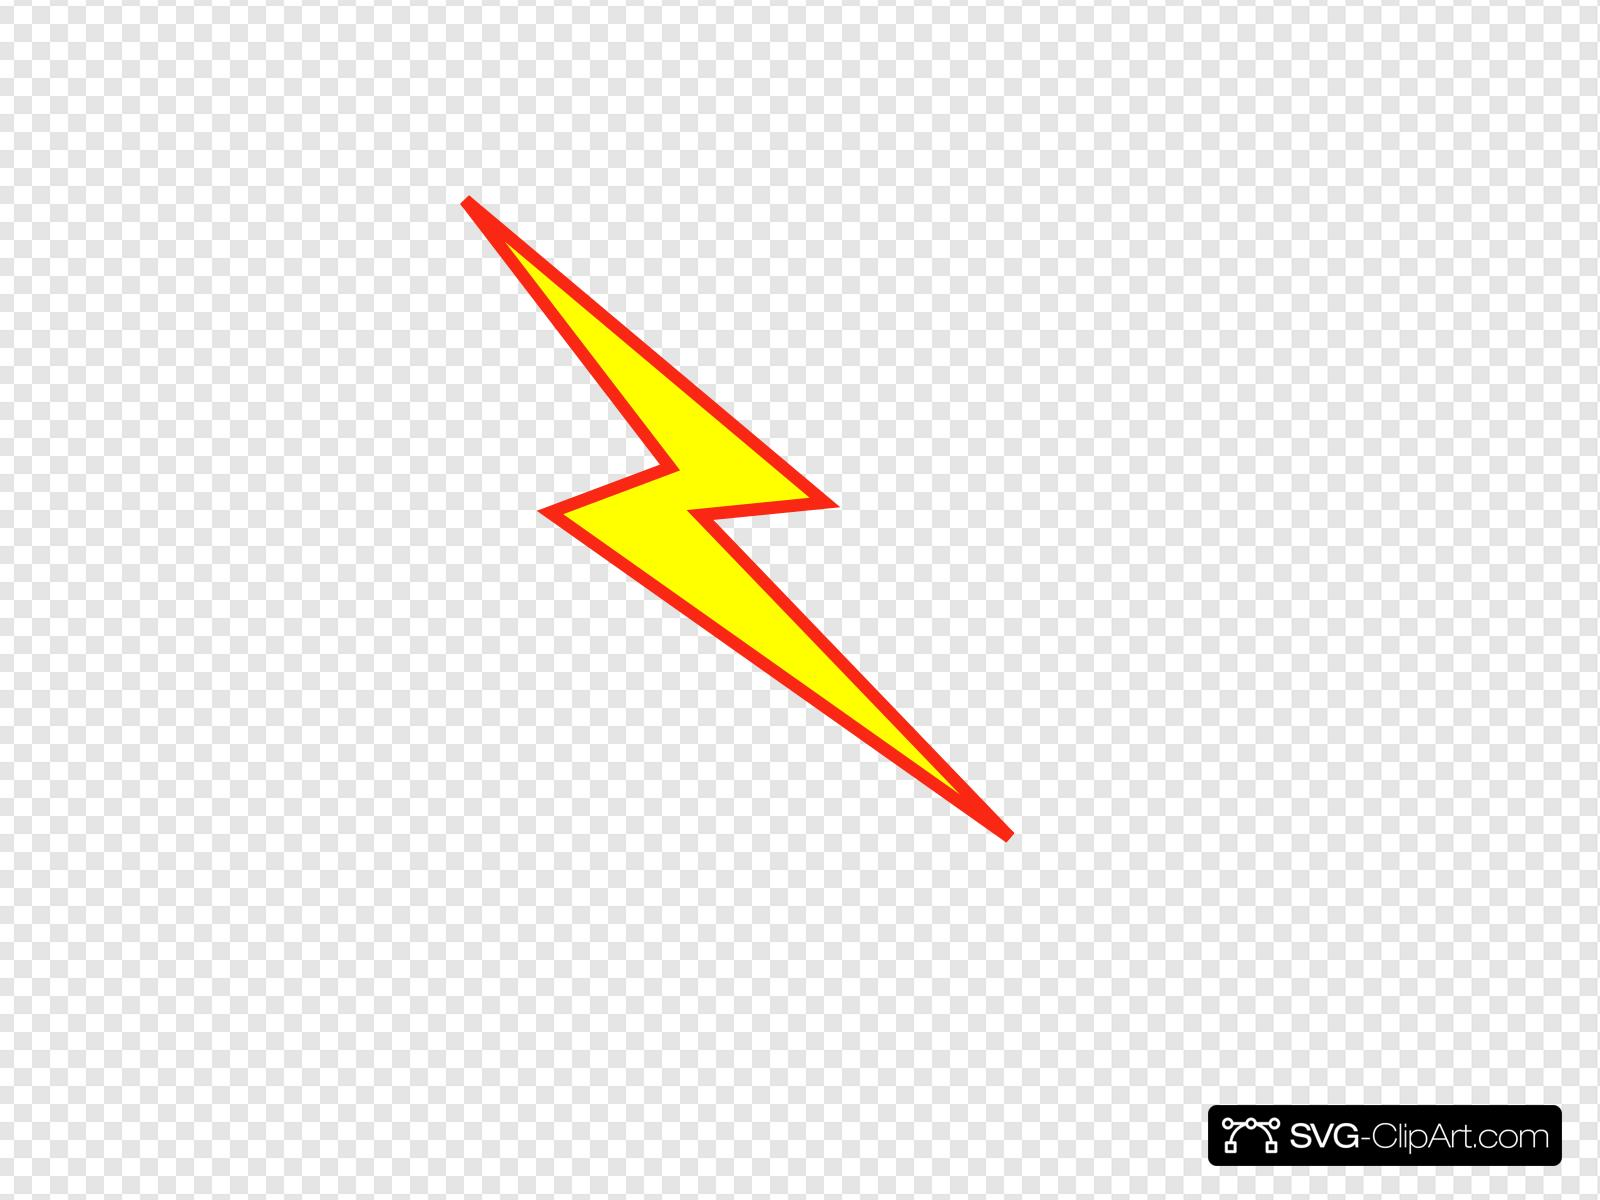 And bolt clip art. Lightning clipart red yellow